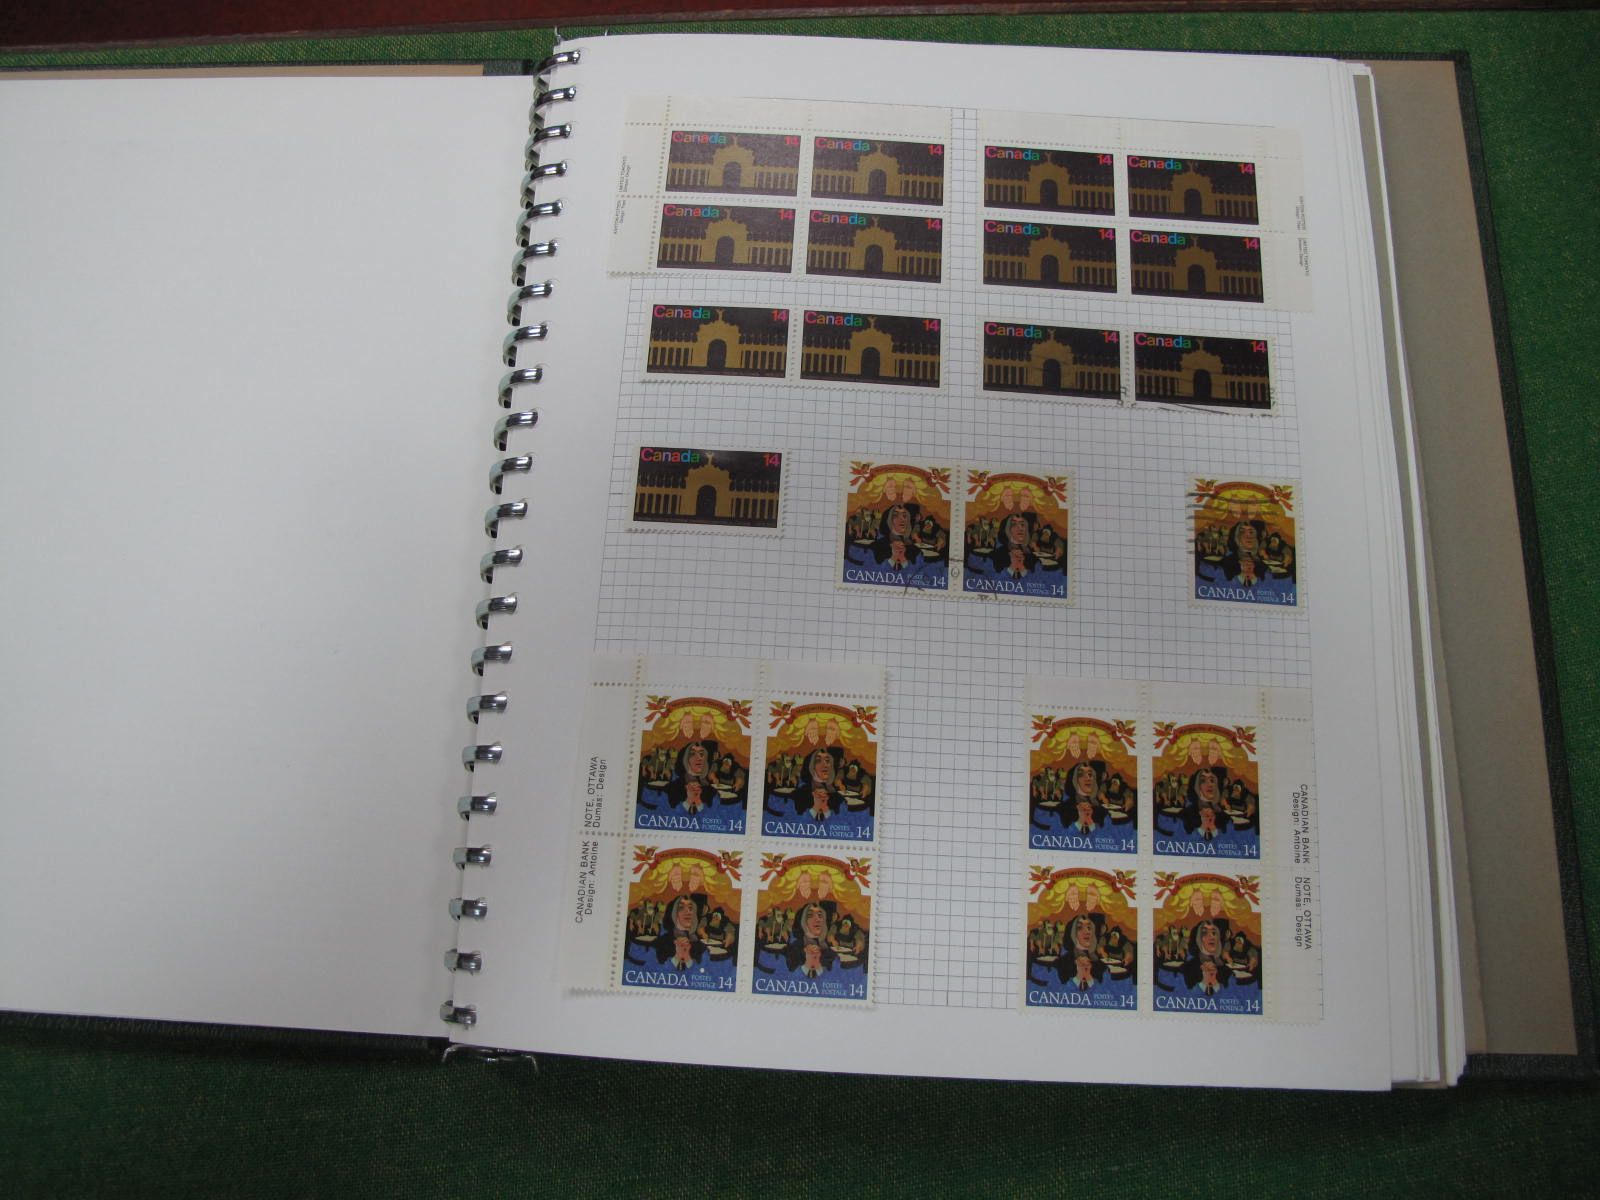 A G.B and Commonwealth Stamp Collection, housed in a twenty two ring binder, includes G.B from Queen